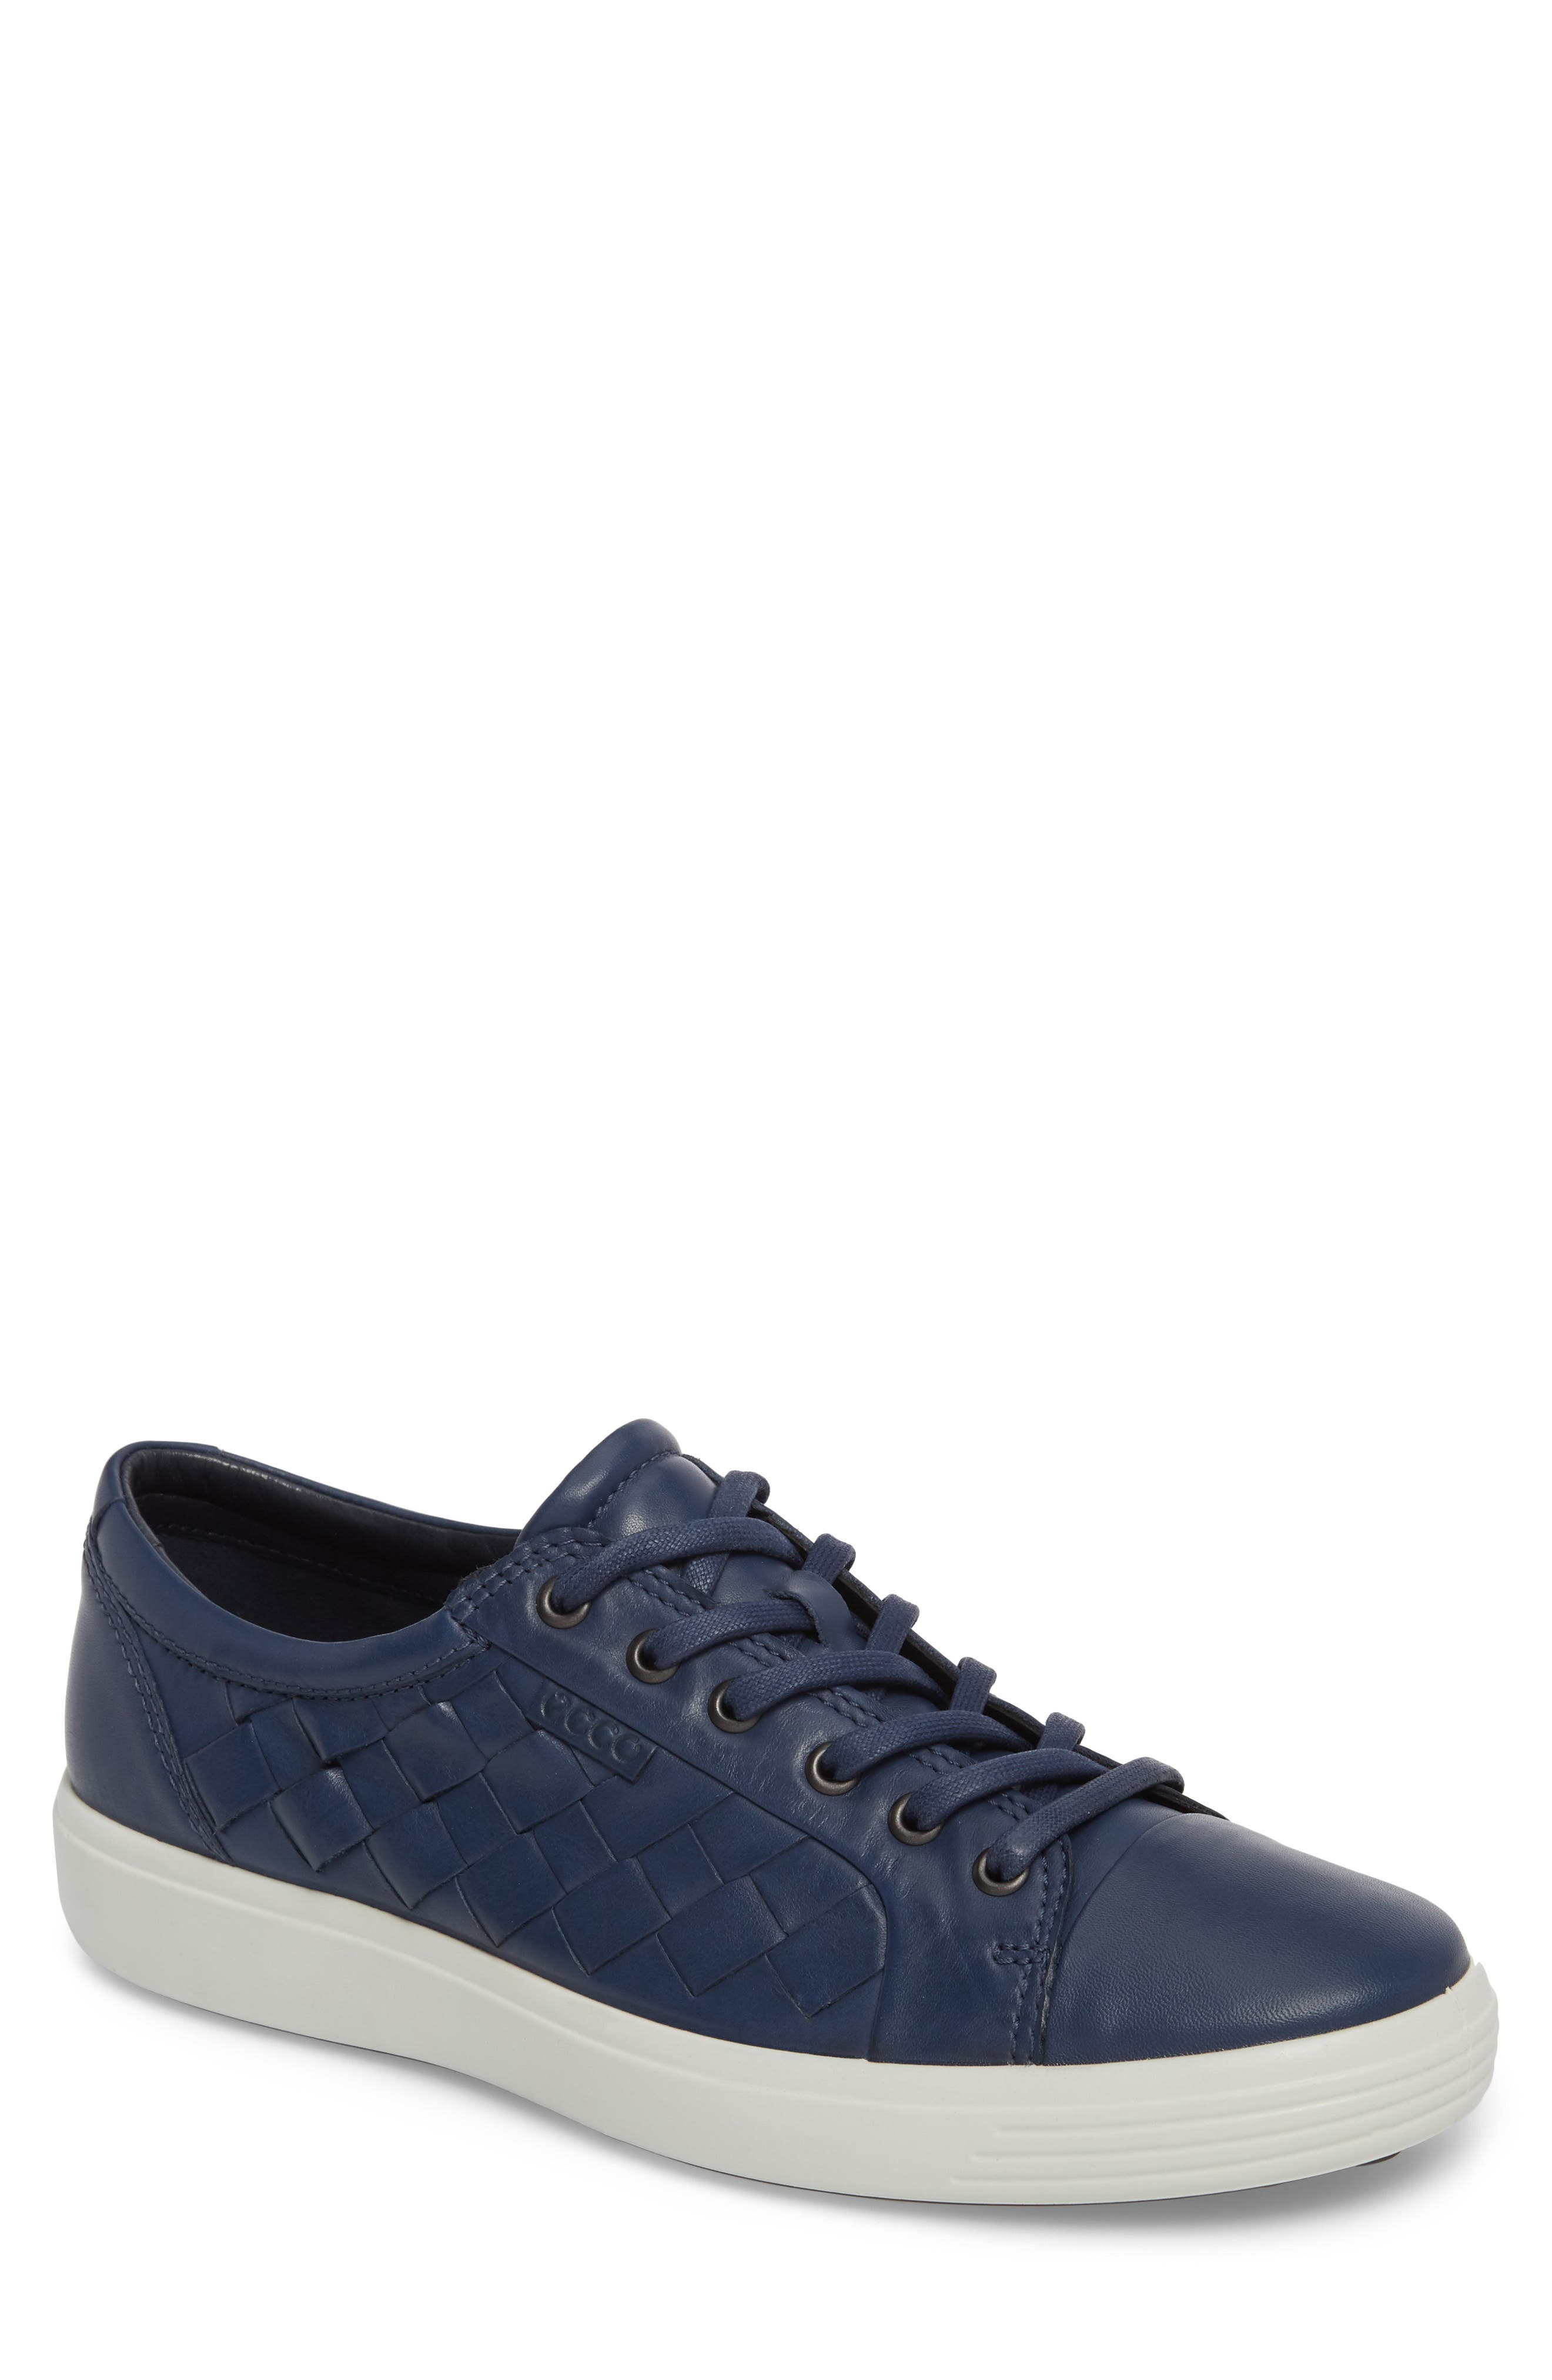 Soft 7 Woven Sneaker,                         Main,                         color, True Navy Leather